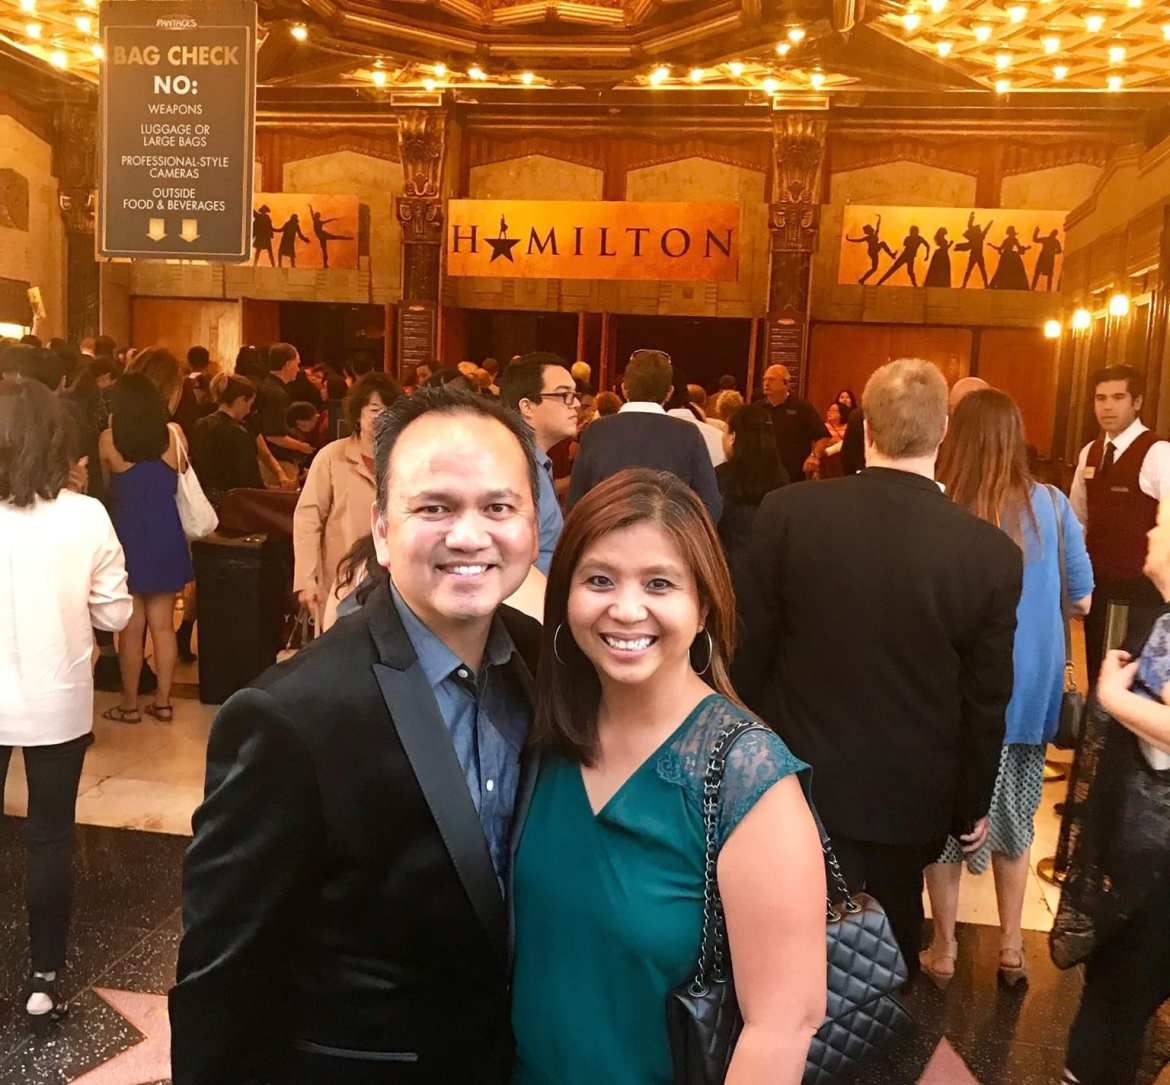 My takeaways after watching Hamilton in NYC, San Francisco, Los Angeles, & London